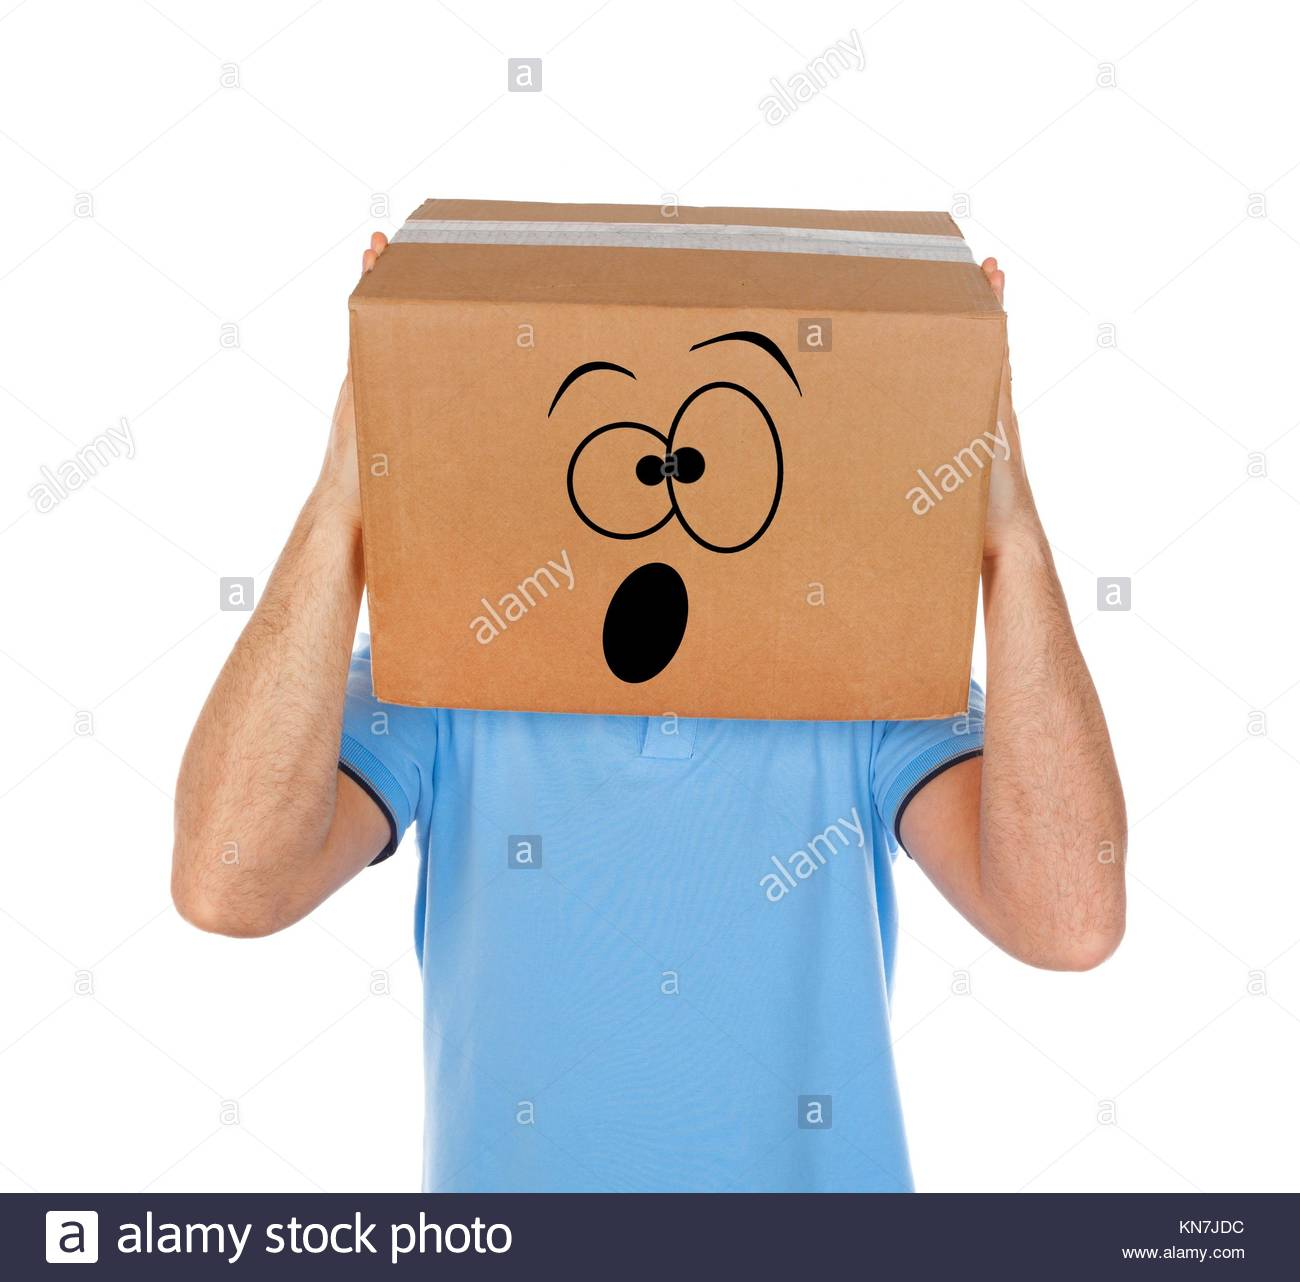 Man with cardboard box on his head and frightened emoticon face on white background. - Stock Image